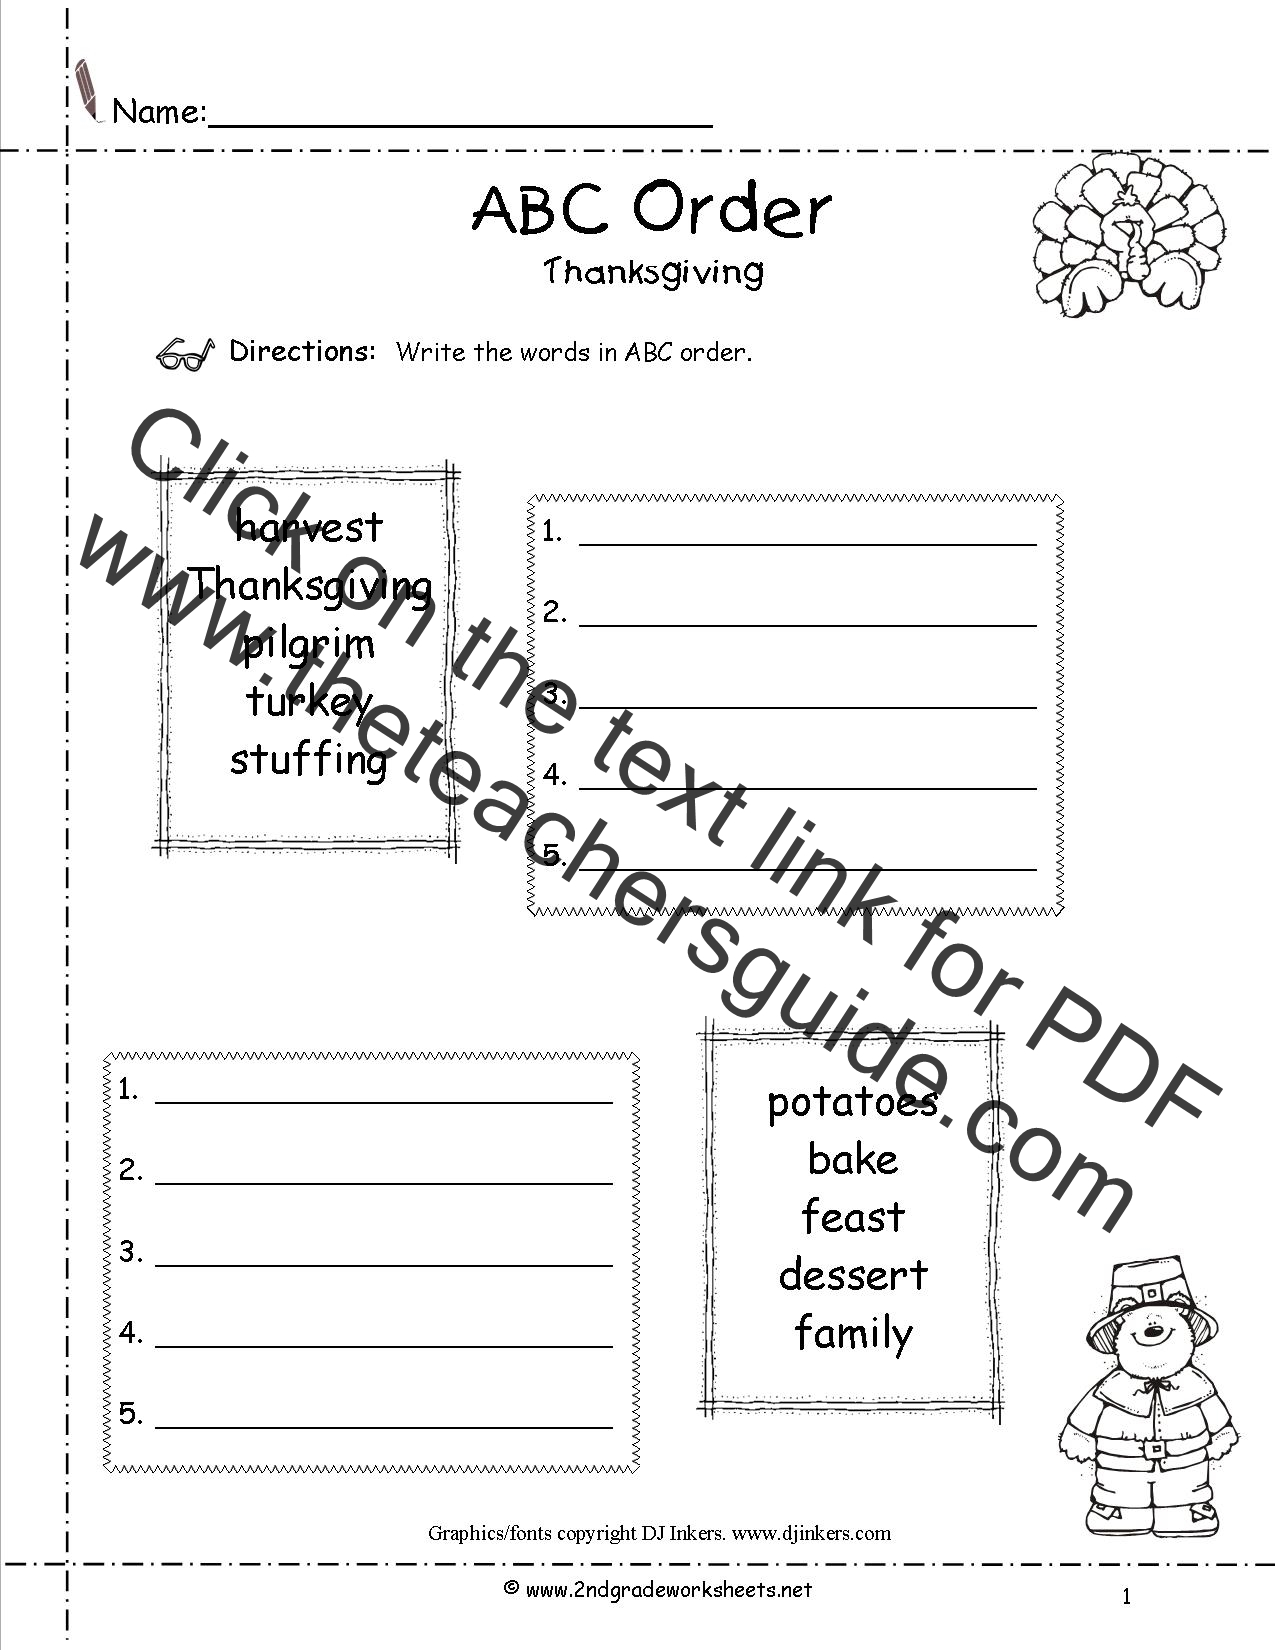 Worksheets Abc Order Worksheets thanksgiving printouts and worksheets abc order worksheet